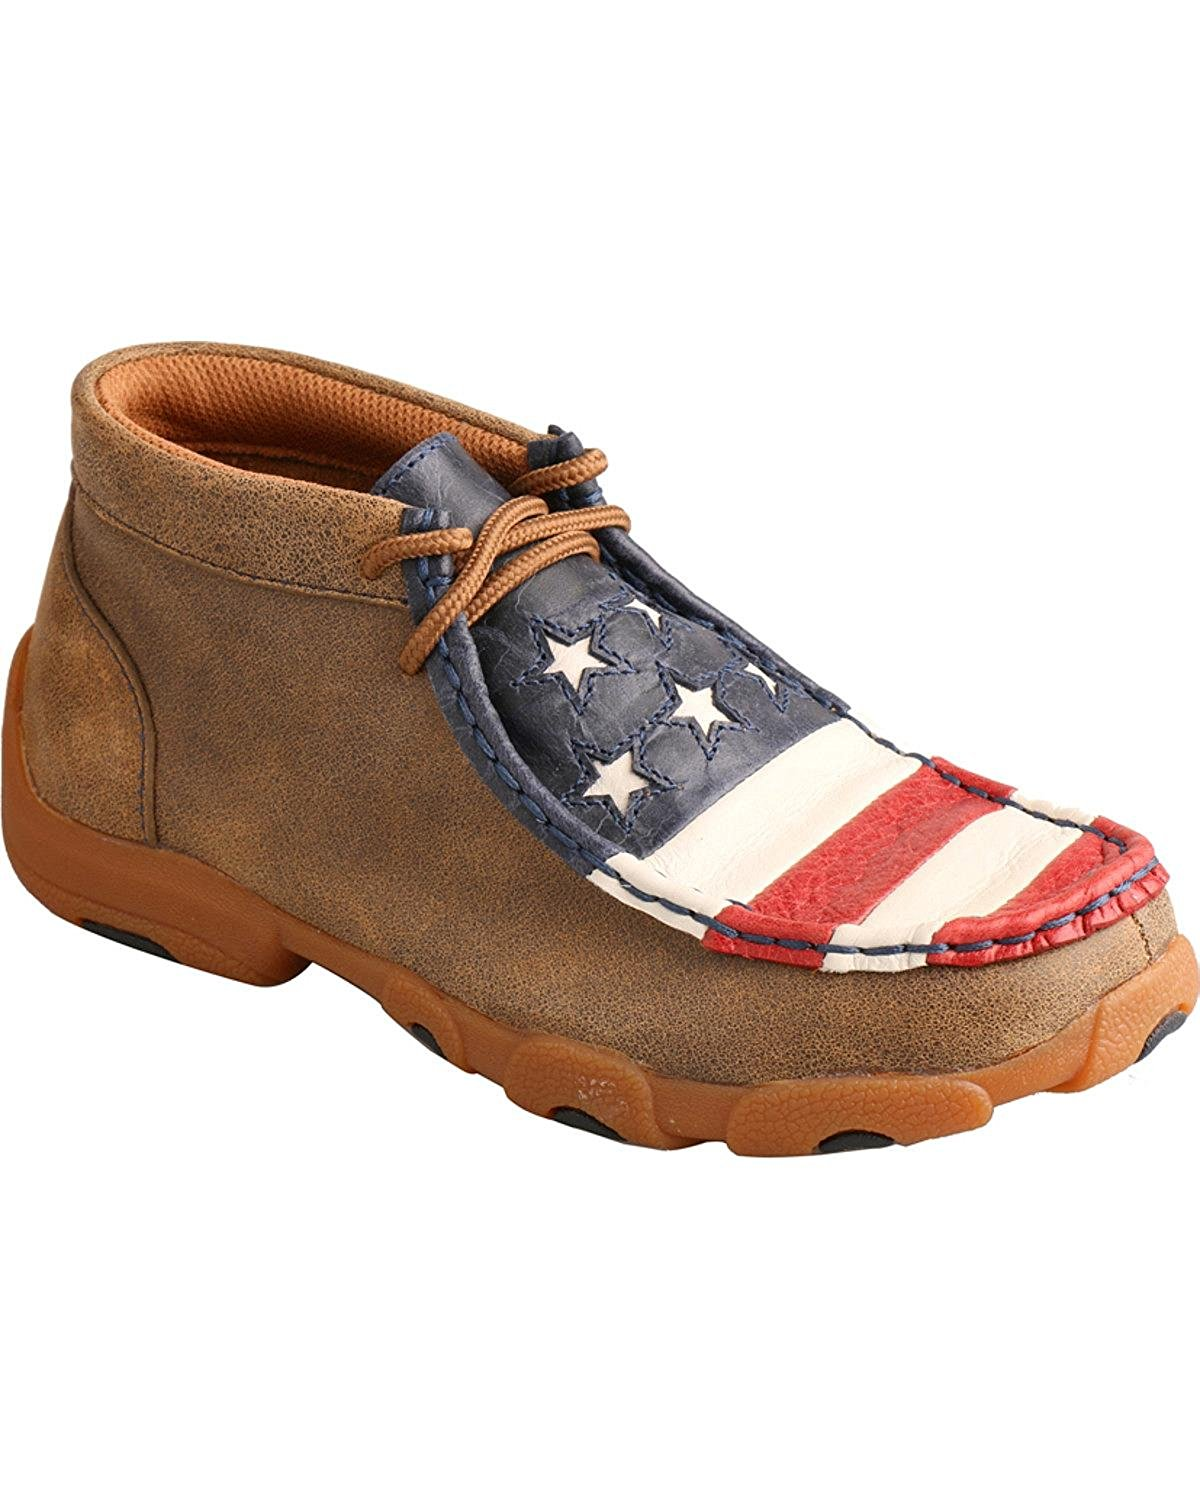 59d2292679282 Get Quotations · Twisted X Casual Shoes Boys Kids Driving Moc Patriotic  Bomber YDM0013